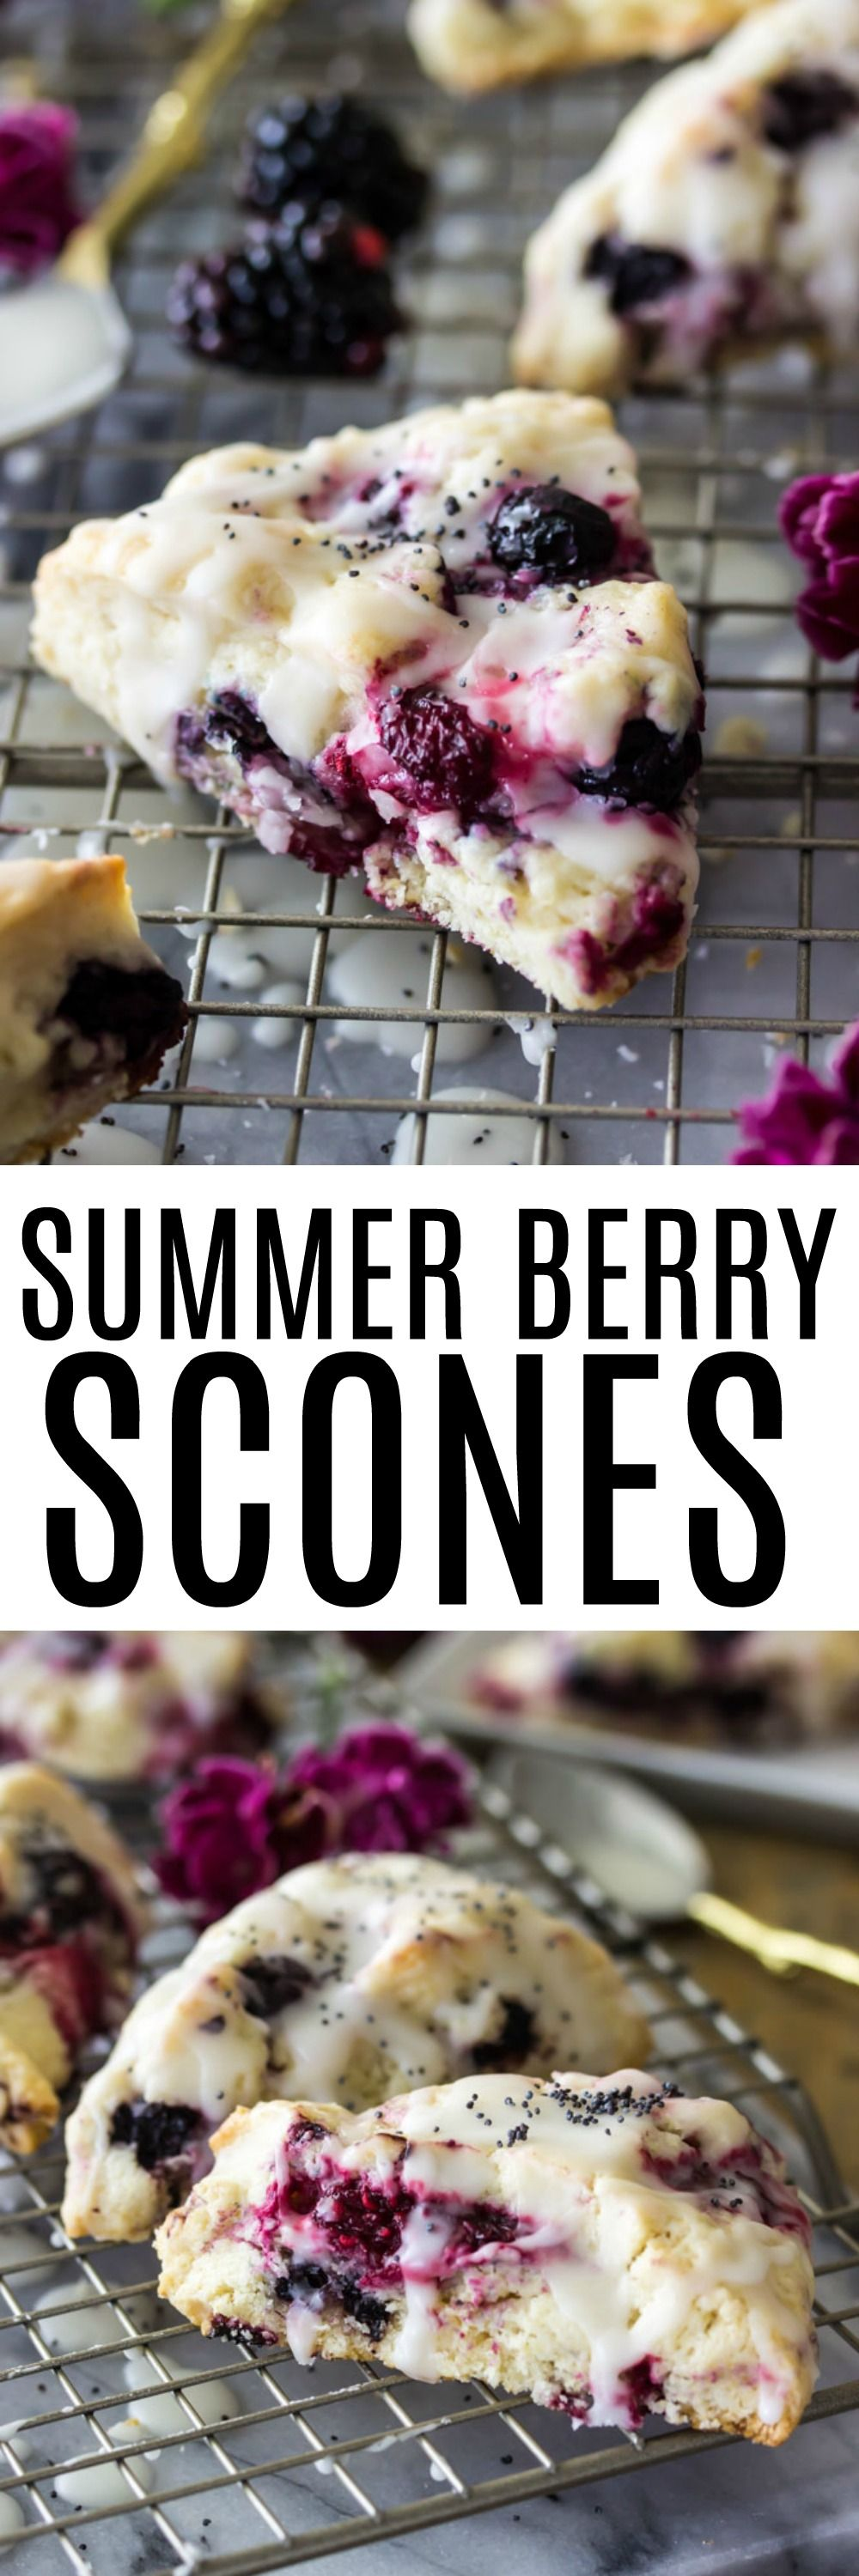 Sweet summer berry scones are buttery scones made with fresh summertime berries, a sunny lemon glaze, and a sprinkling of poppy seeds.